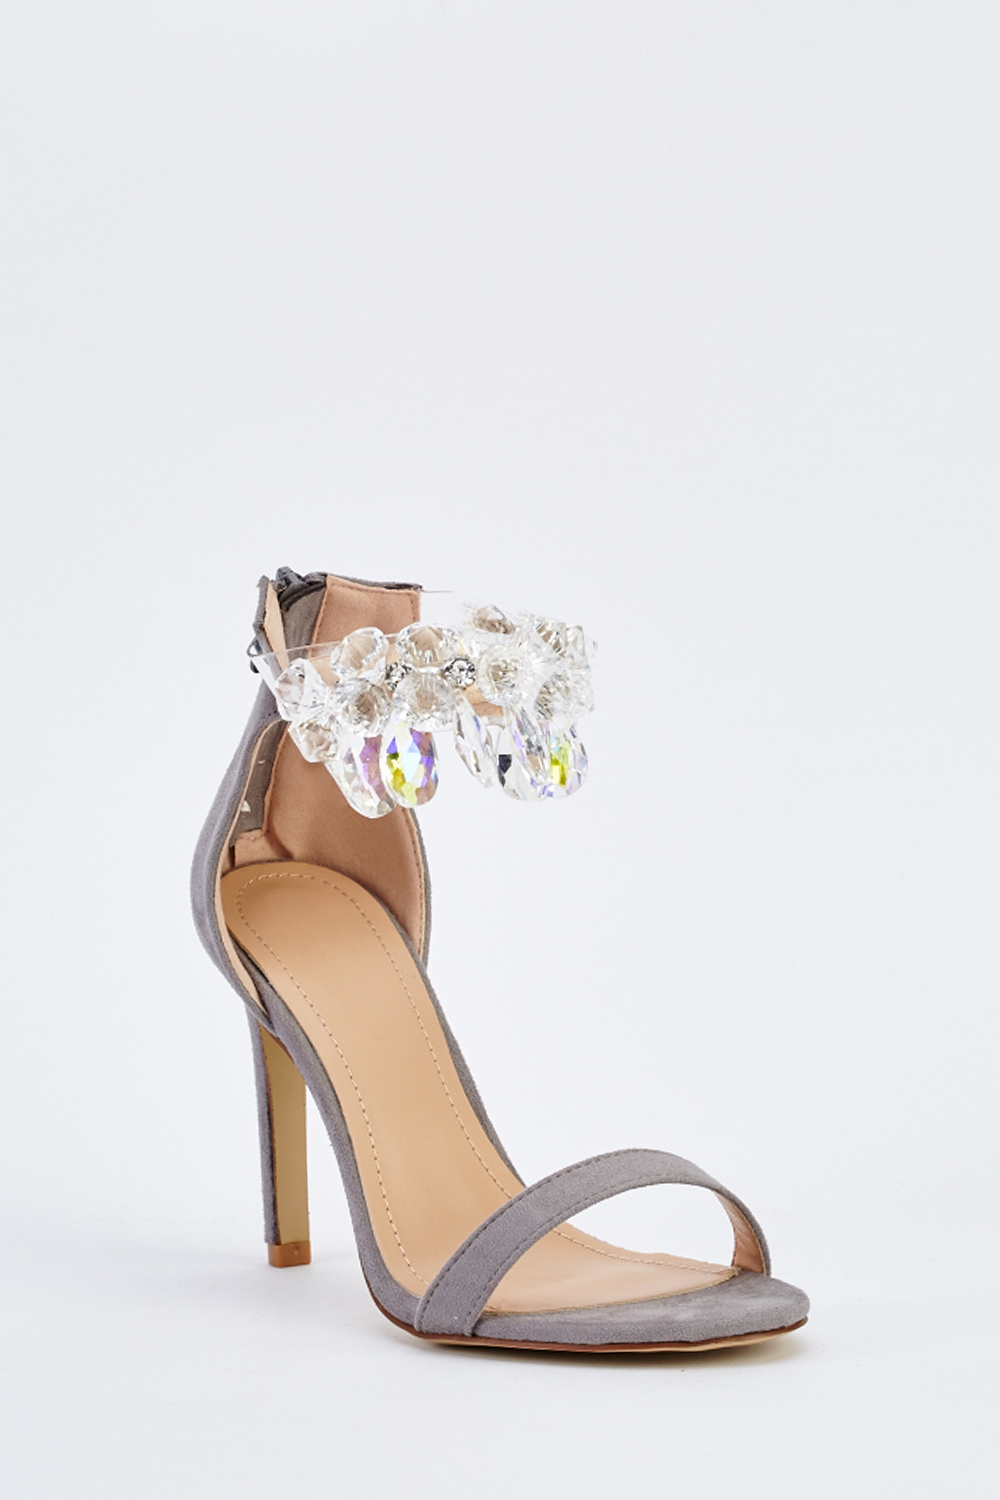 4b0cb58a8a74 Embellished Ankle Strap Heeled Sandals - Just £5